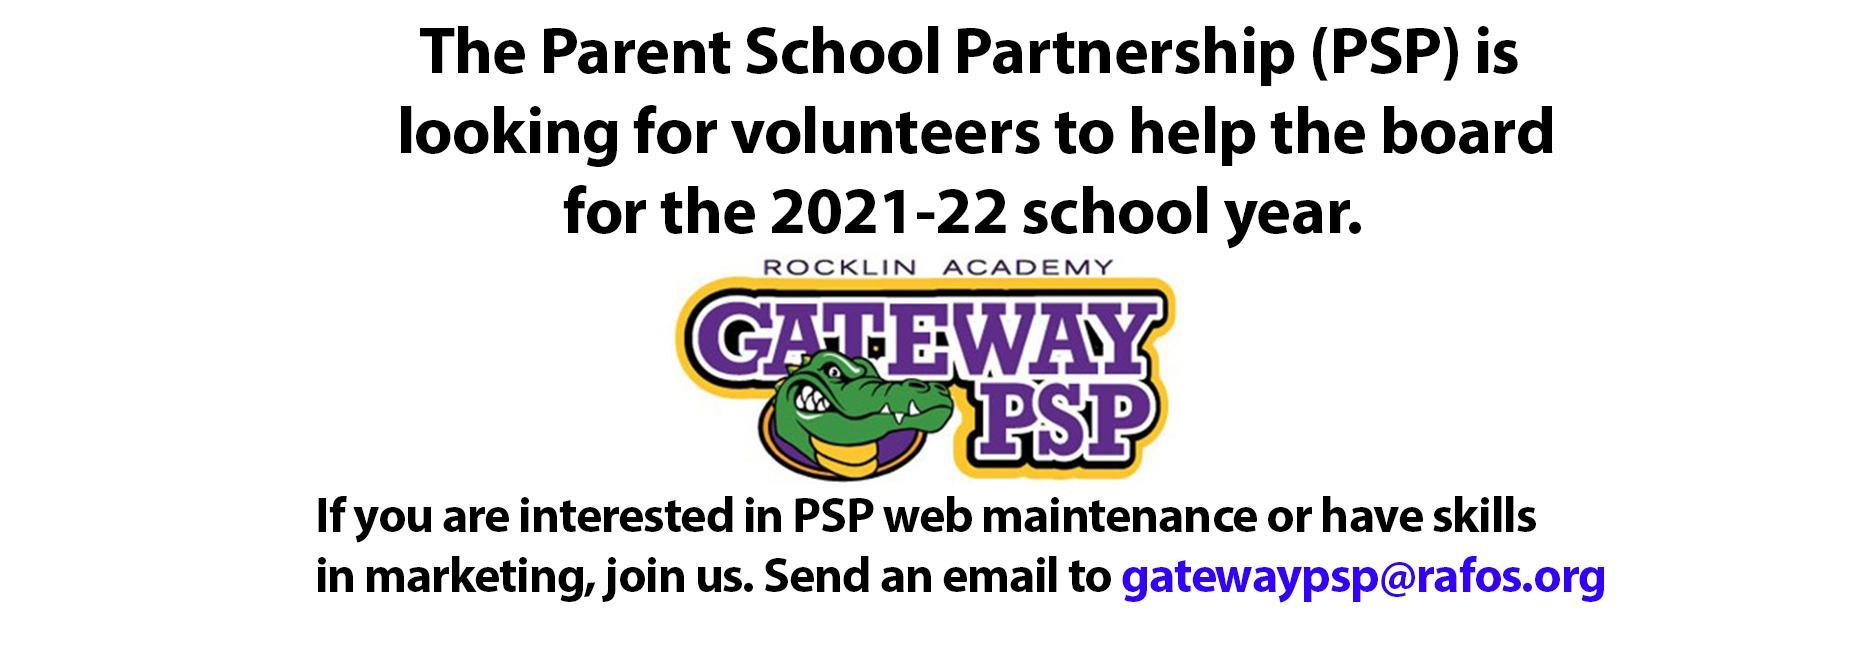 Join the PSP board in 21-22